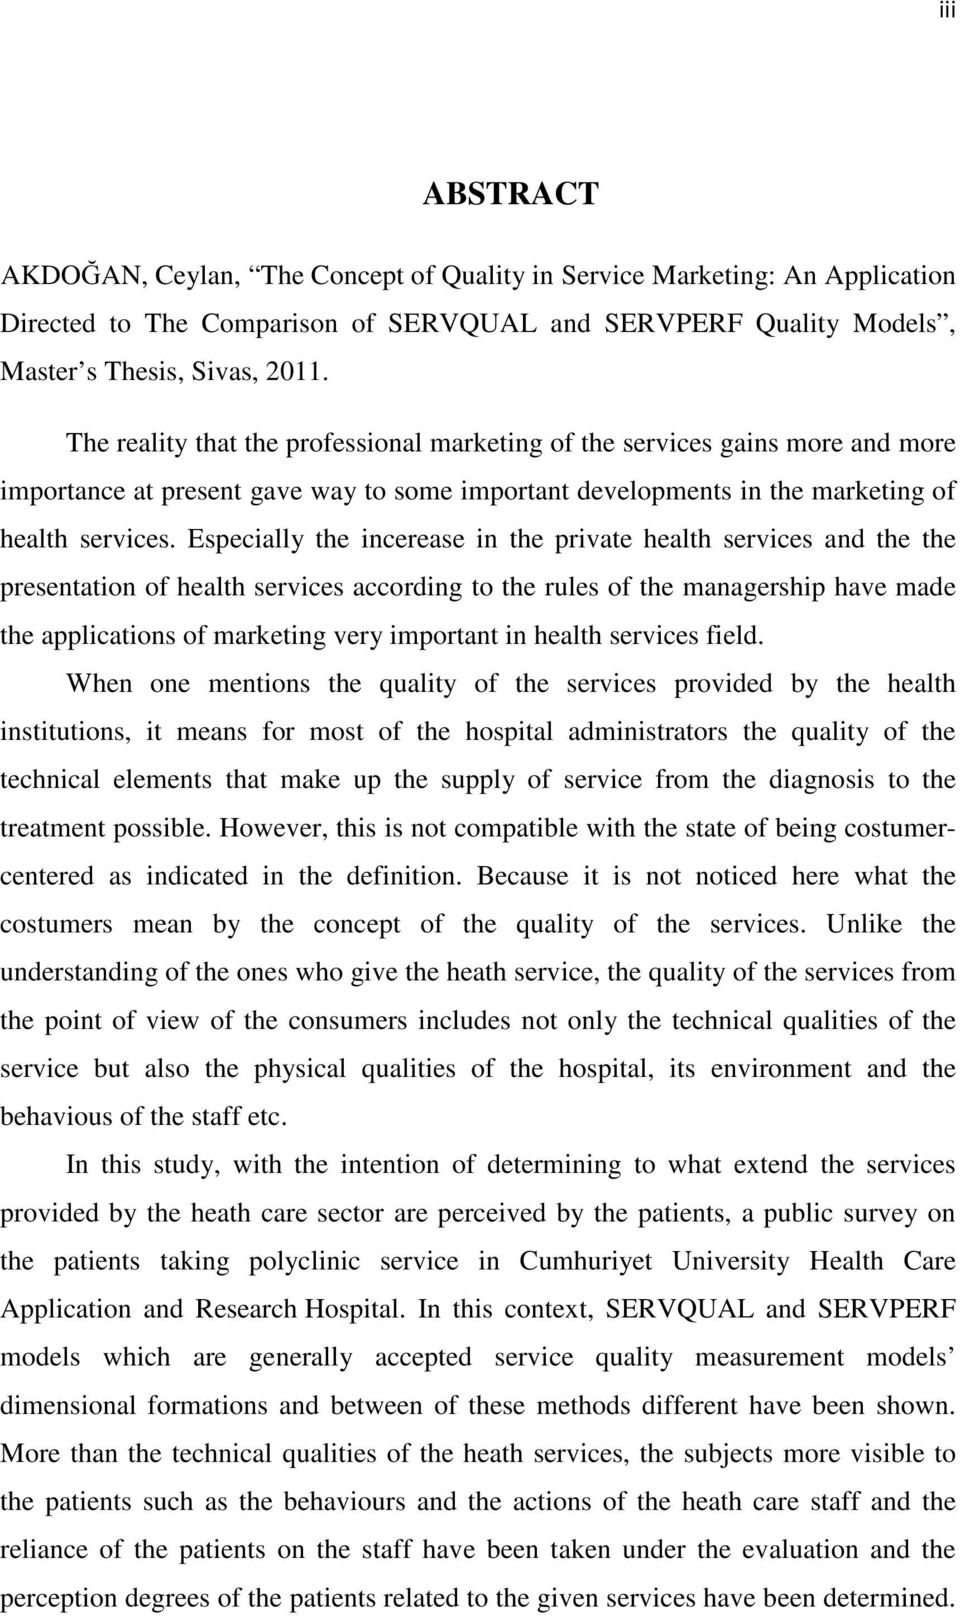 Especially the incerease in the private health services and the the presentation of health services according to the rules of the managership have made the applications of marketing very important in